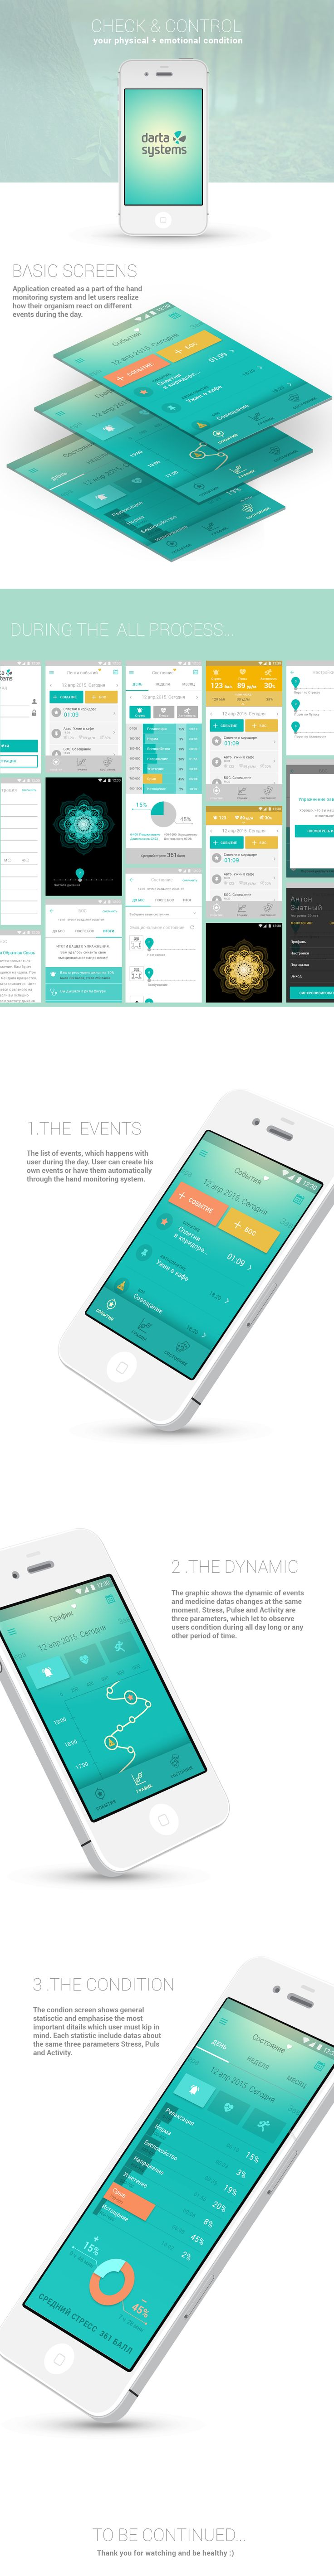 Mobile Application created as a part of the hand monitoring system and let users realize how their organism react on different events during the day.